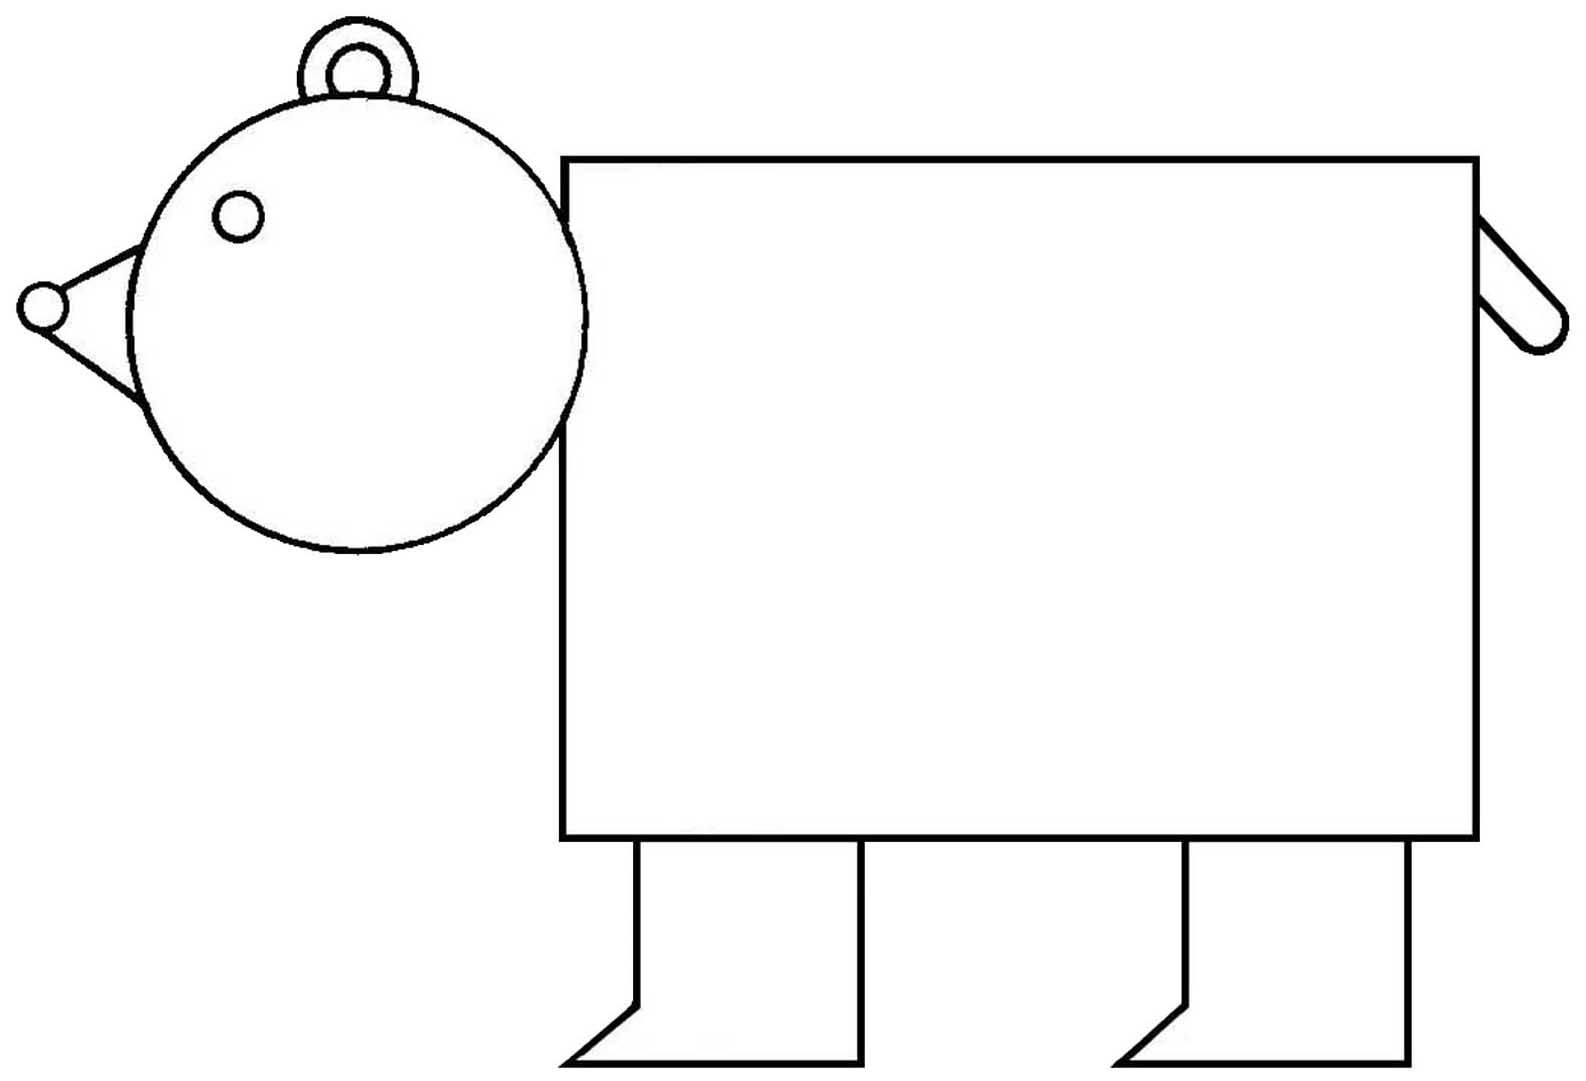 Drawings Of A Bear - ClipArt Best